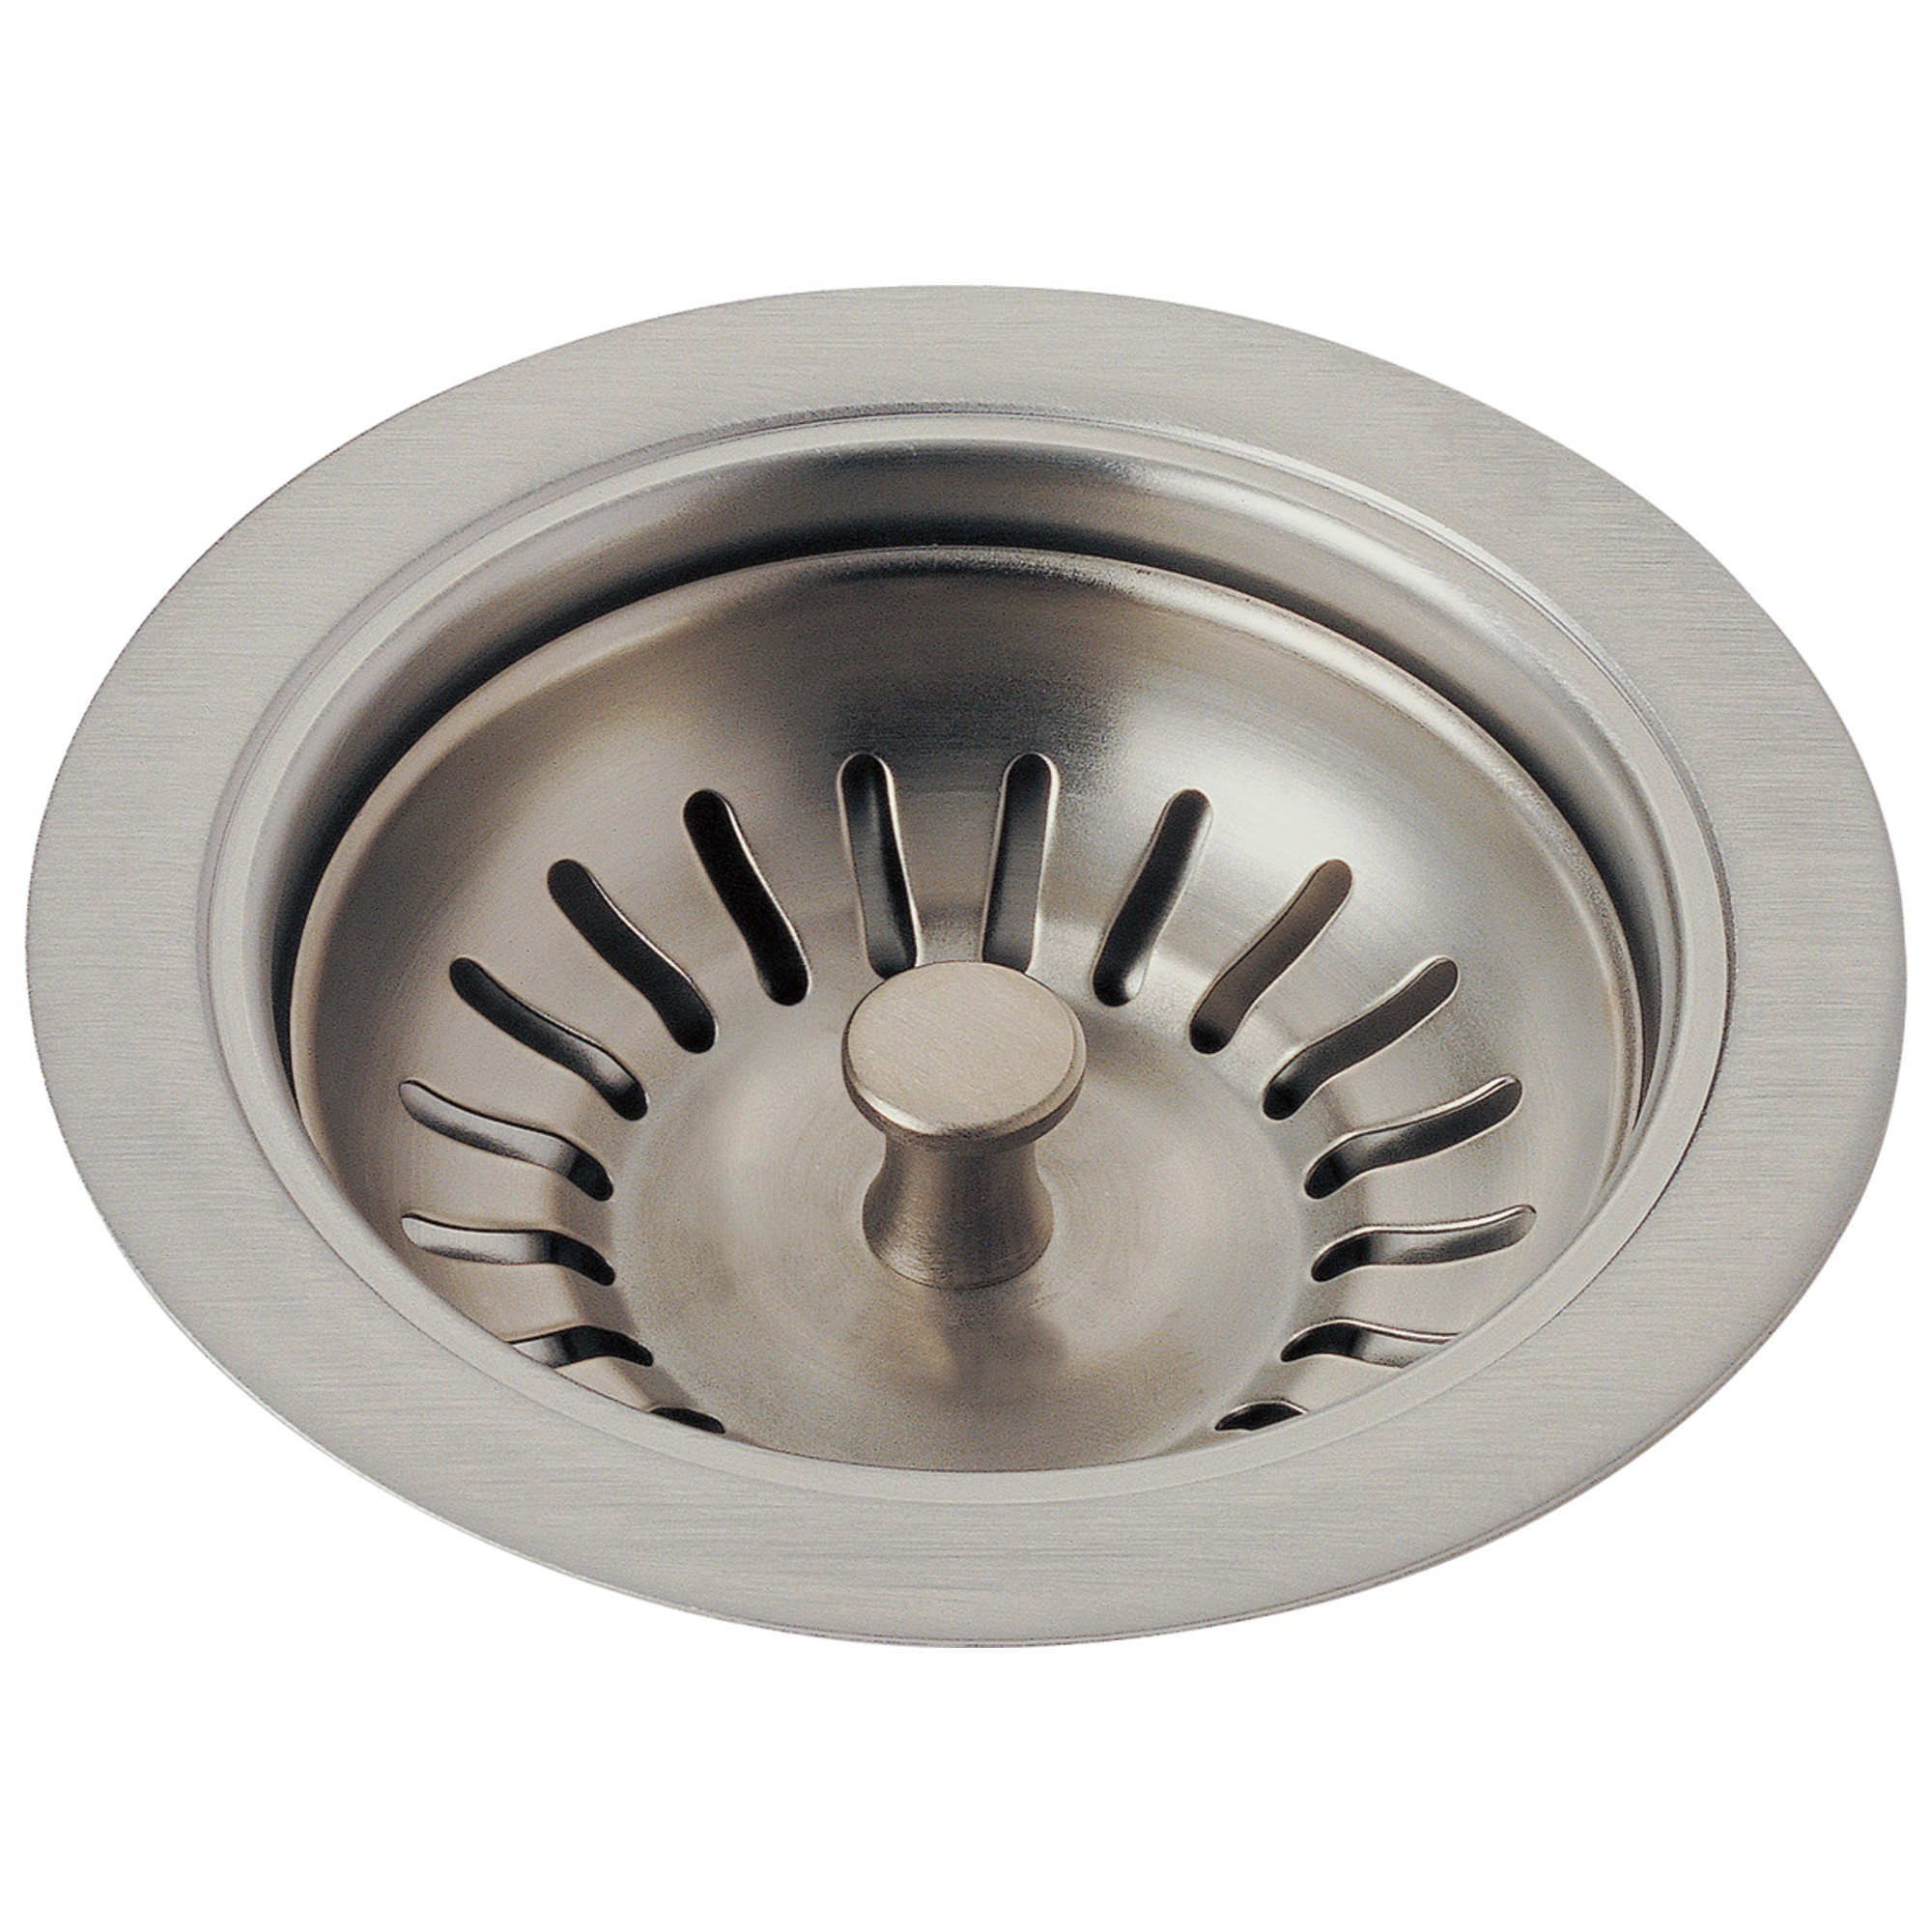 Brizo 69050-SS Other Flange and Strainer - Kitchen Sink - Stainless